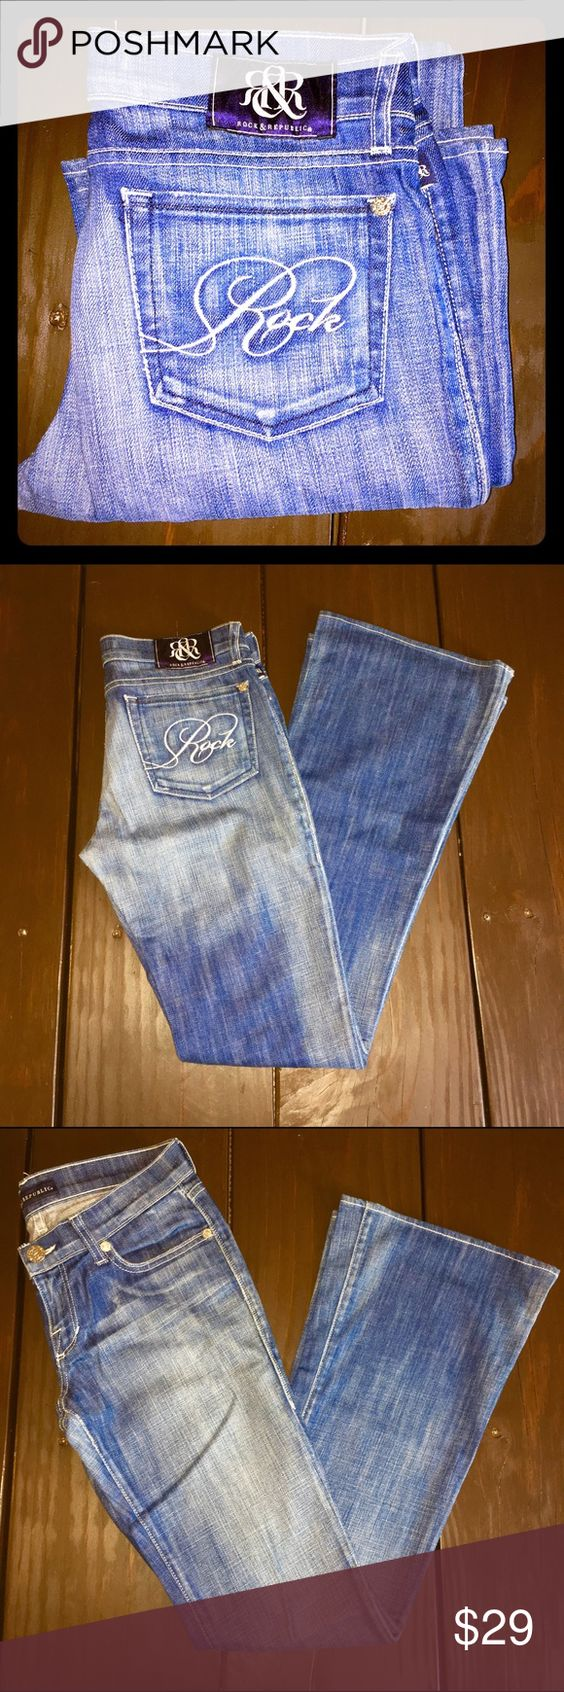 Rock & Republic jeans Worn once or twice! Great condition. The bleached areas are not quite as white as in the pictures. Slightly lighter than the rest of the jeans. Rock & Republic Jeans Boot Cut